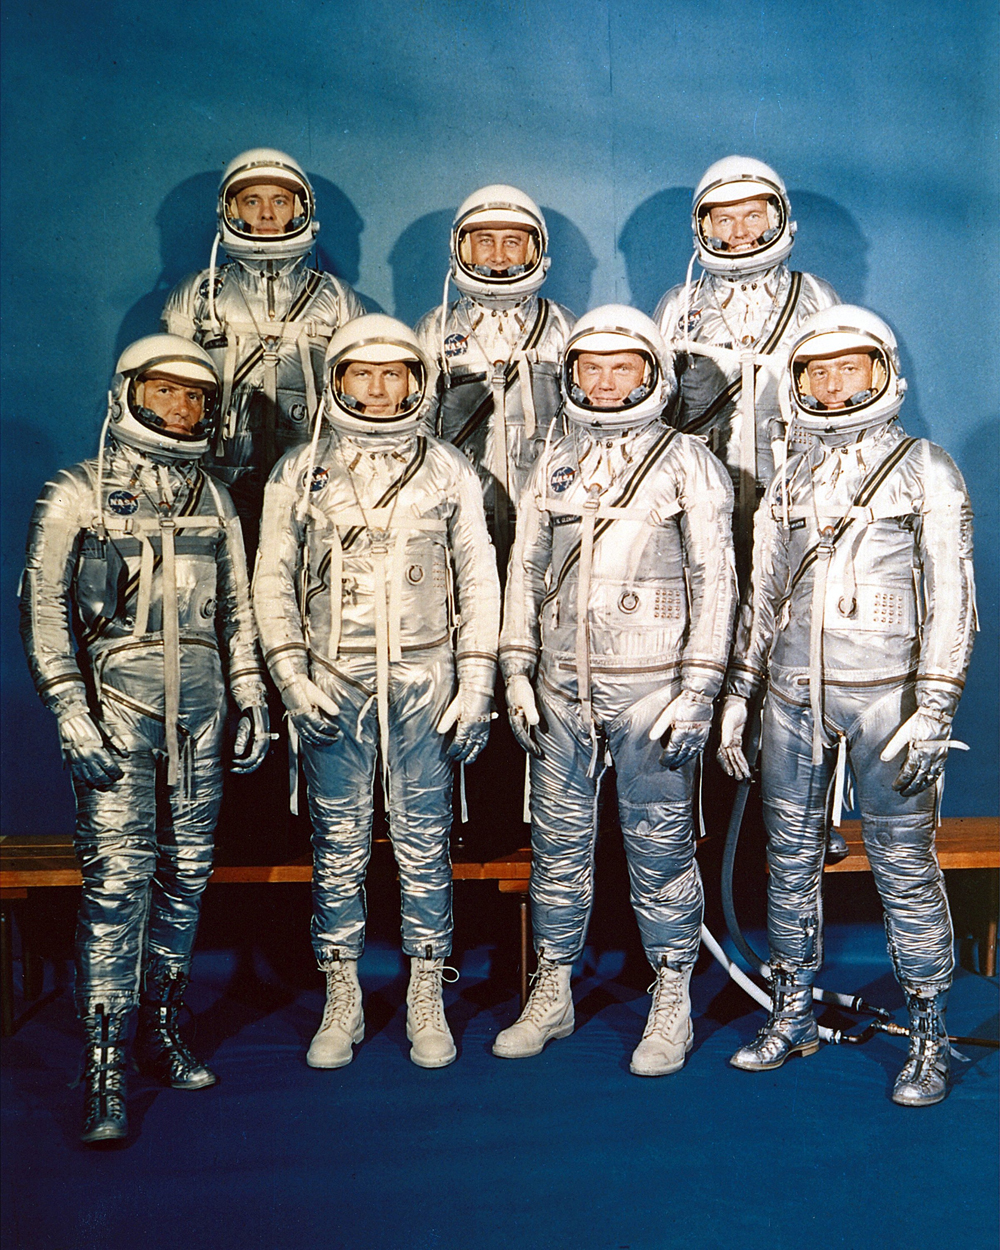 NASA announced the seven Project Mercury Astronauts on April 9, 1959, only six months later. They are: (front, l to r) Walter H. Schirra, Jr., Donald K. Slayton, John H. Glenn, Jr., and Scott Carpenter; (back, l to r) Alan B. Shepard, Jr., Virgil I. Gus Grissom, and L. Gordon Cooper. (Image credit: NASA)